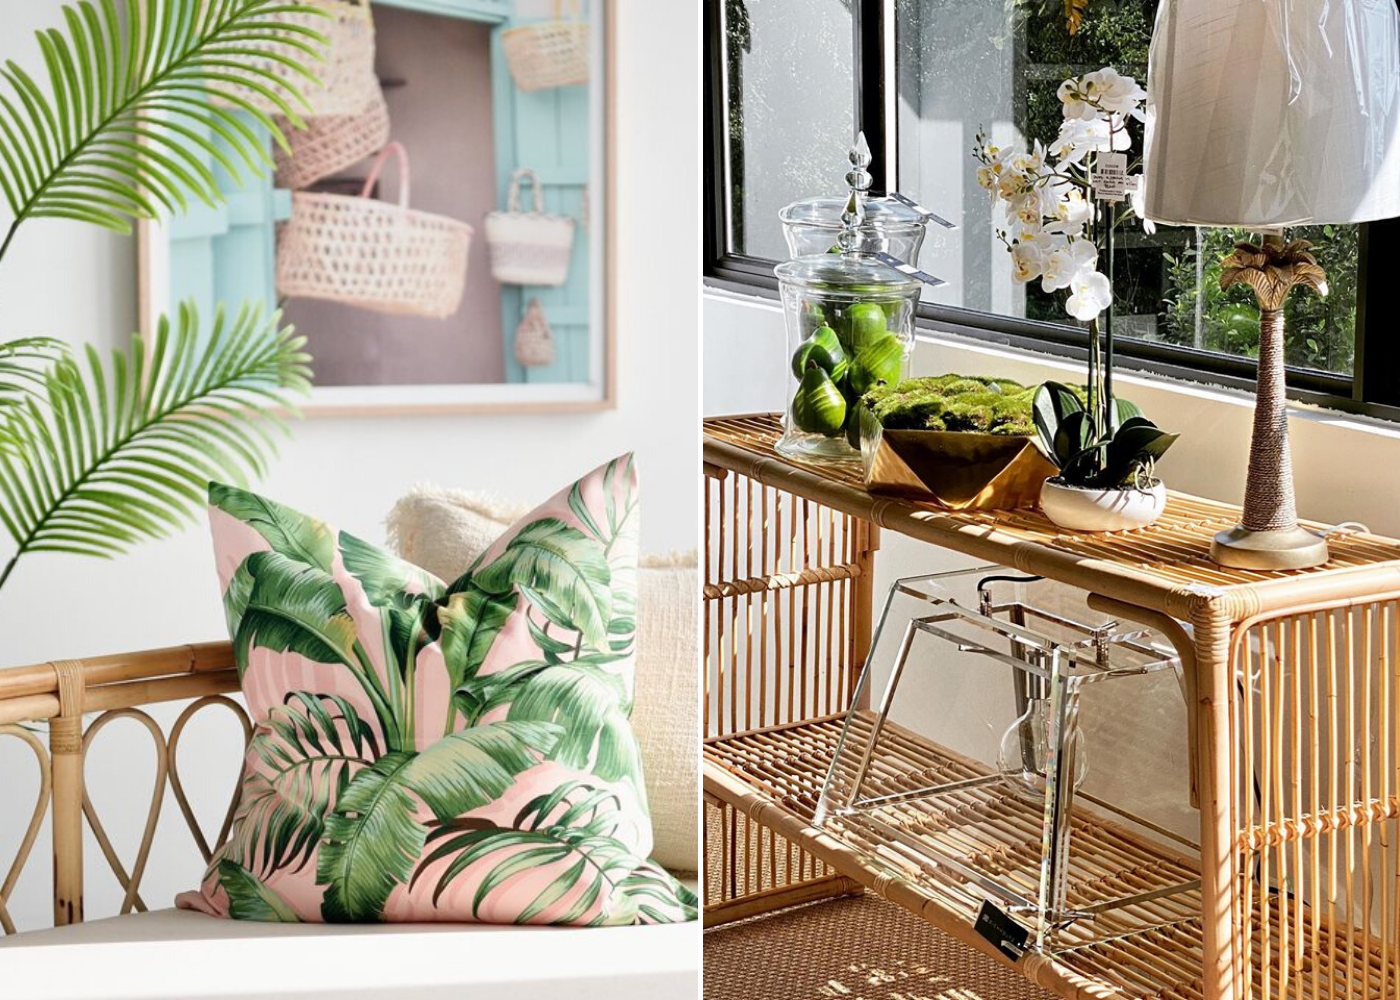 Shop online for tropical bohemian decor in Singapore